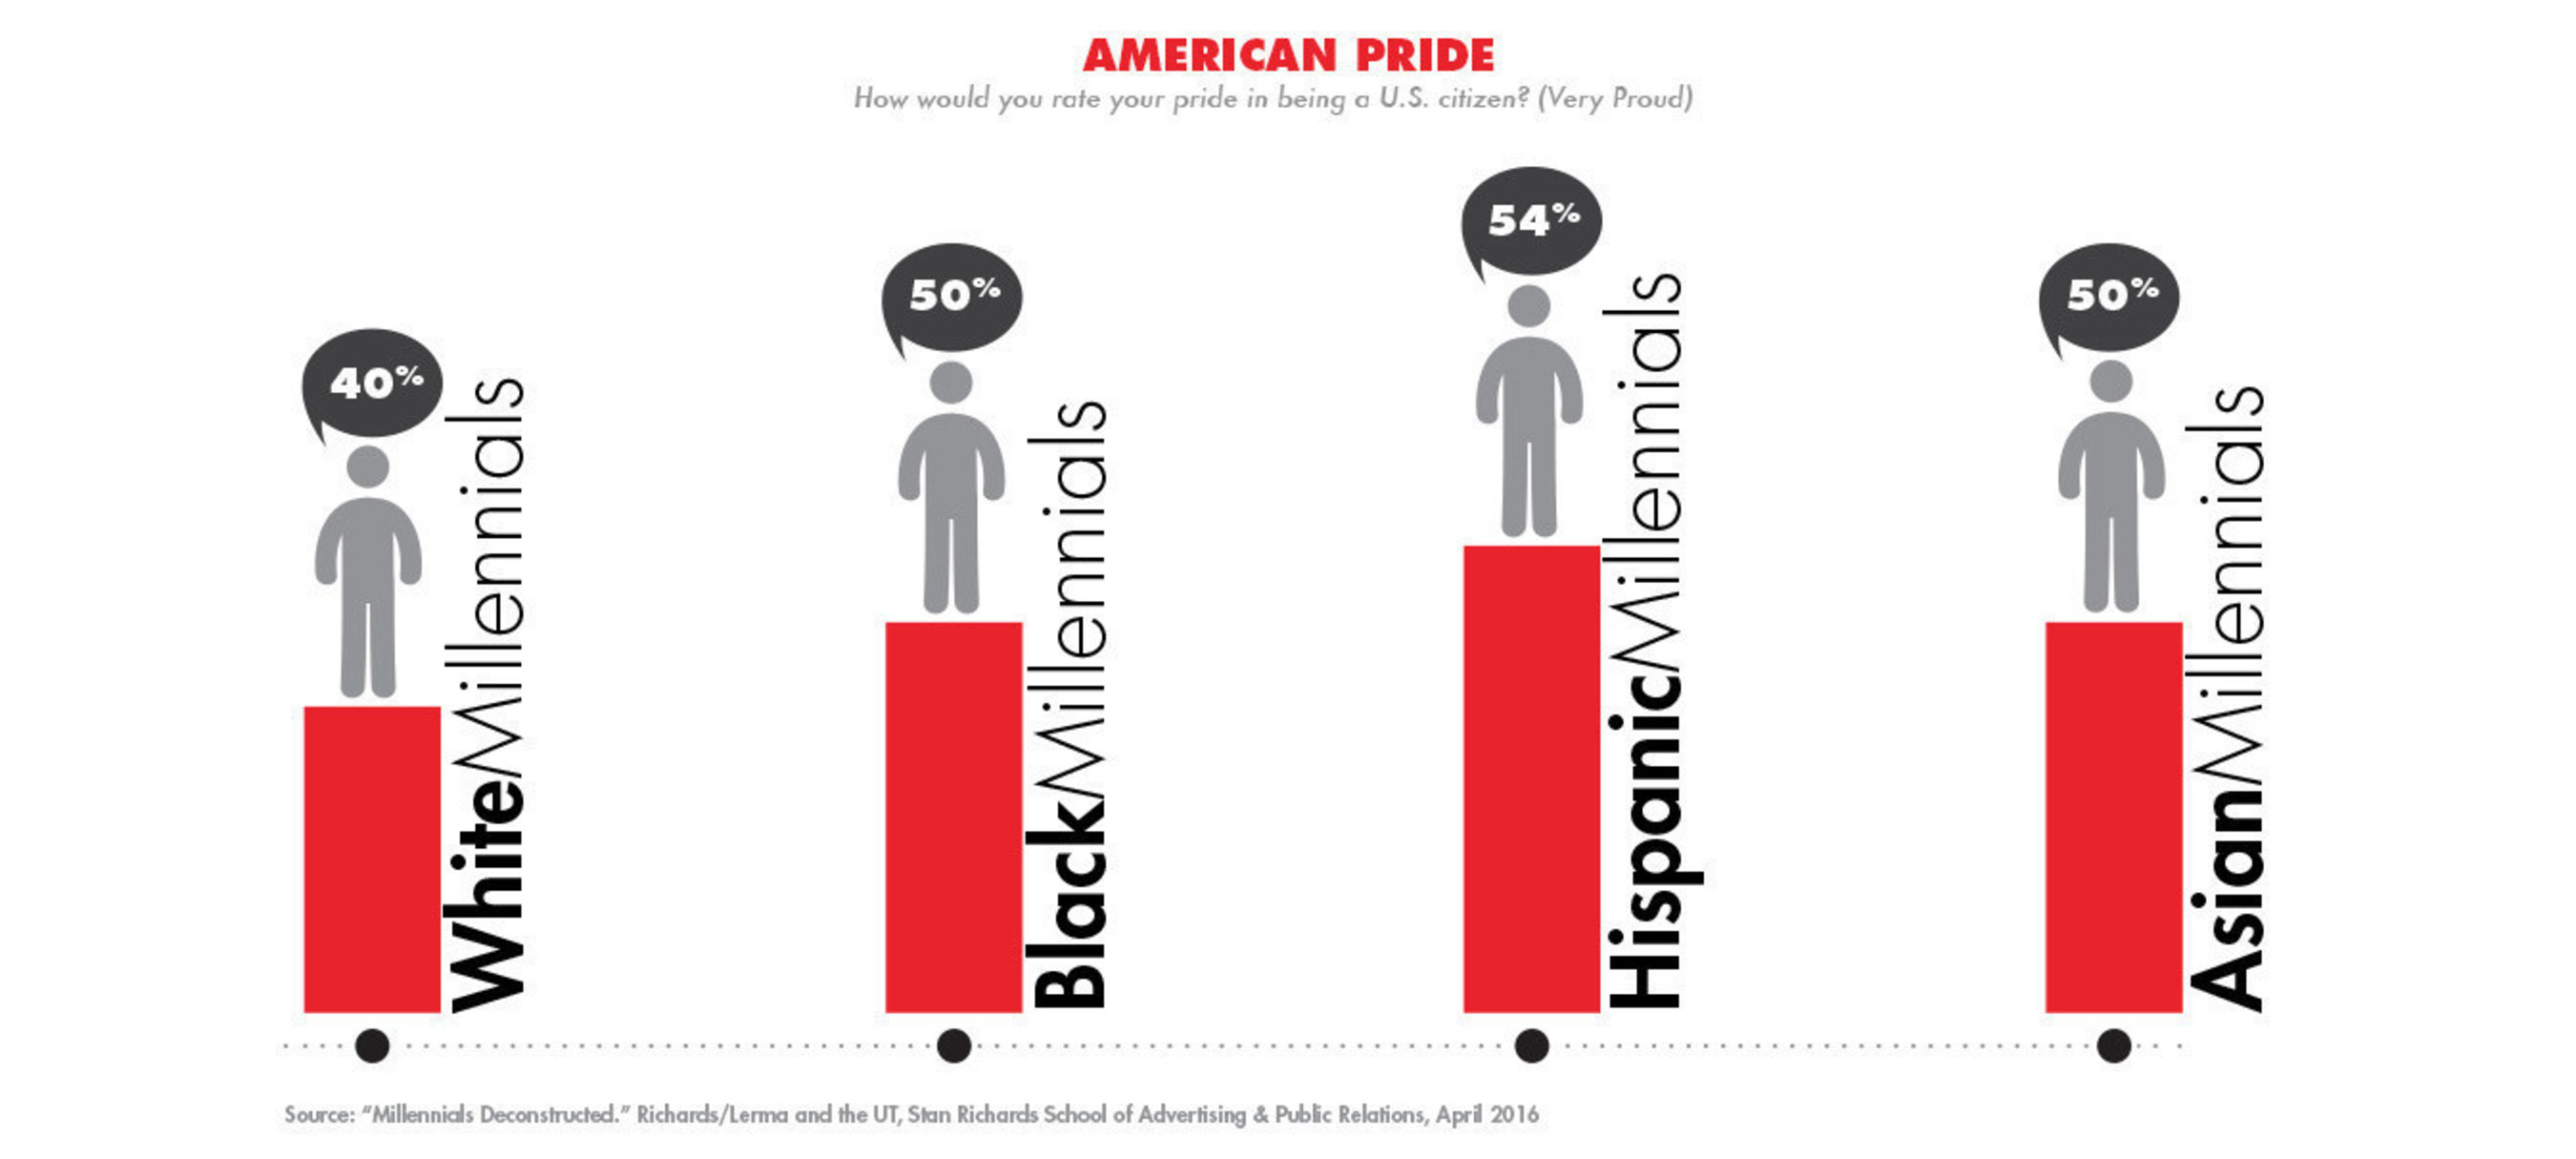 American Pride: How would you rate your pride in being a U.S. Citizen?